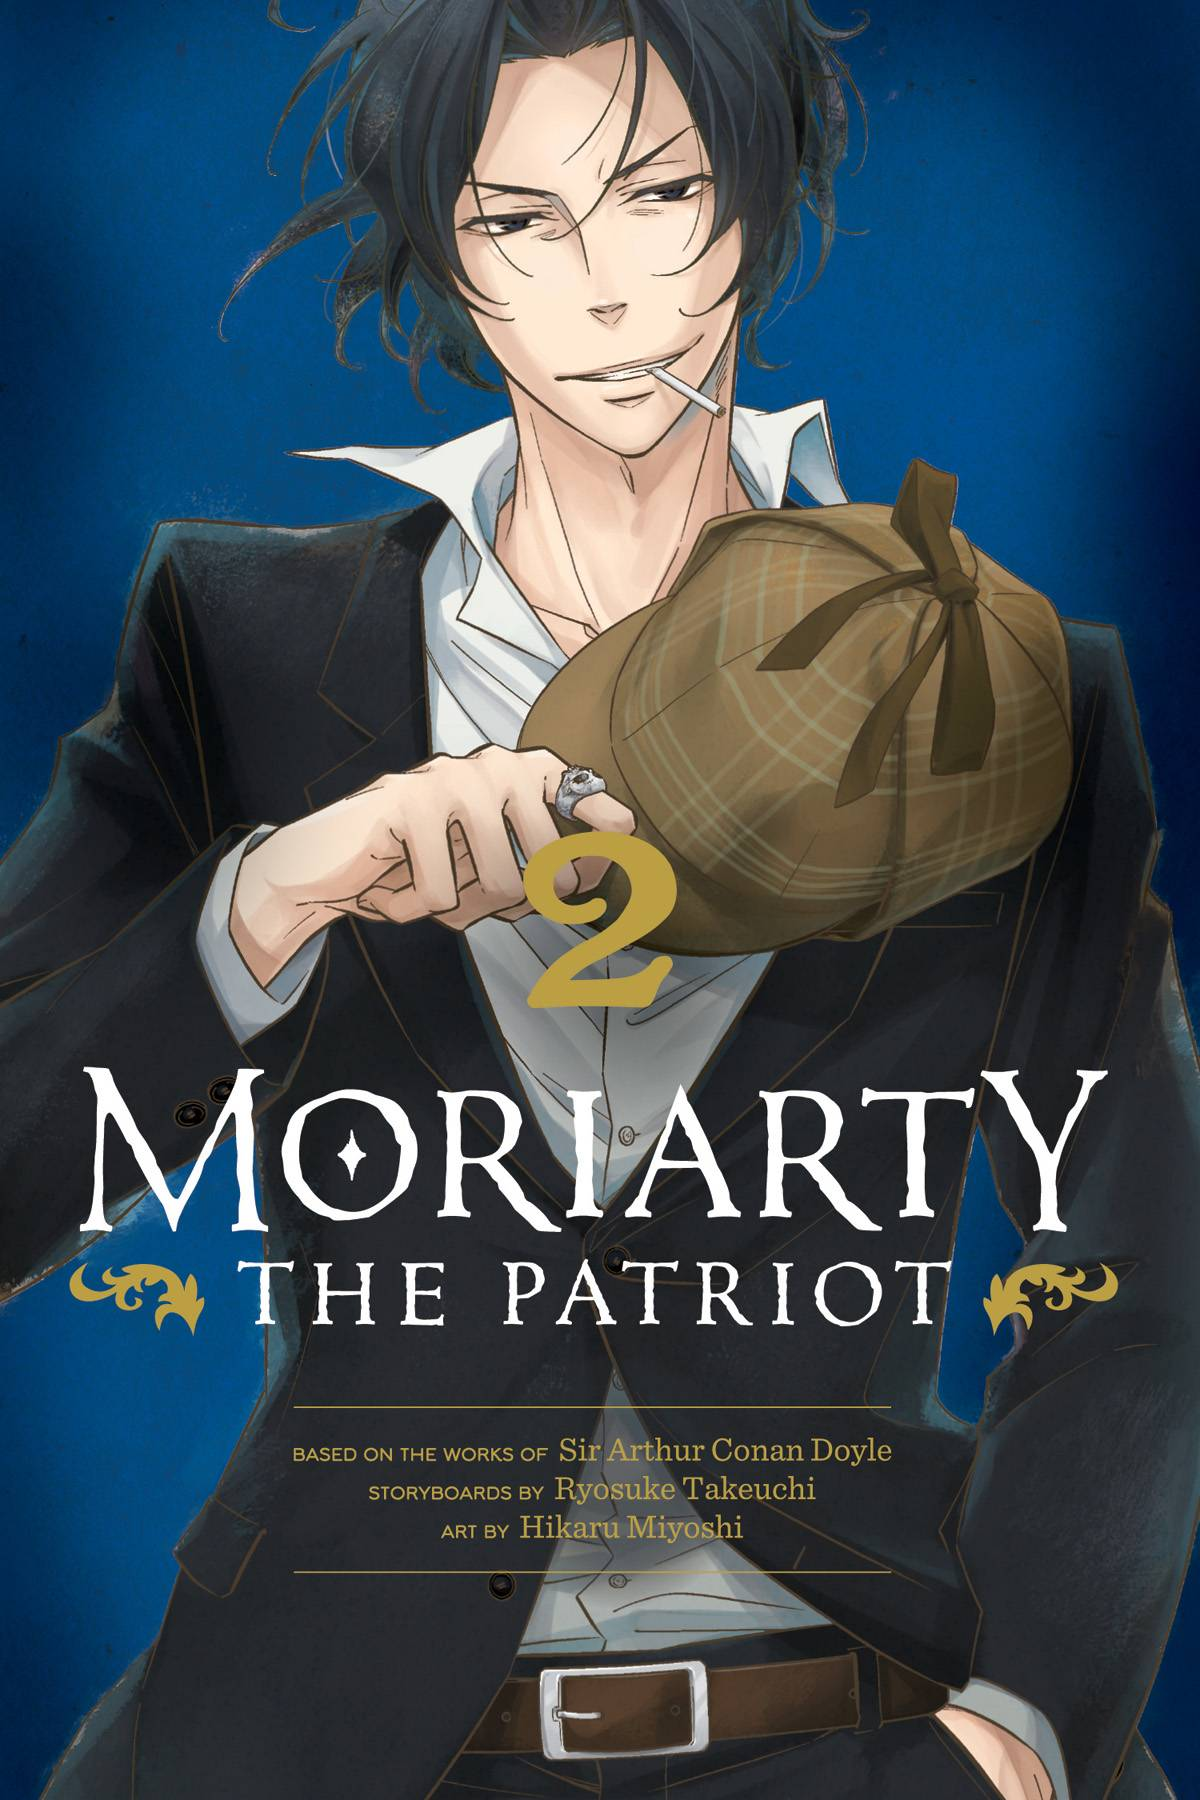 MORIARTY THE PATRIOT GN VOL 02